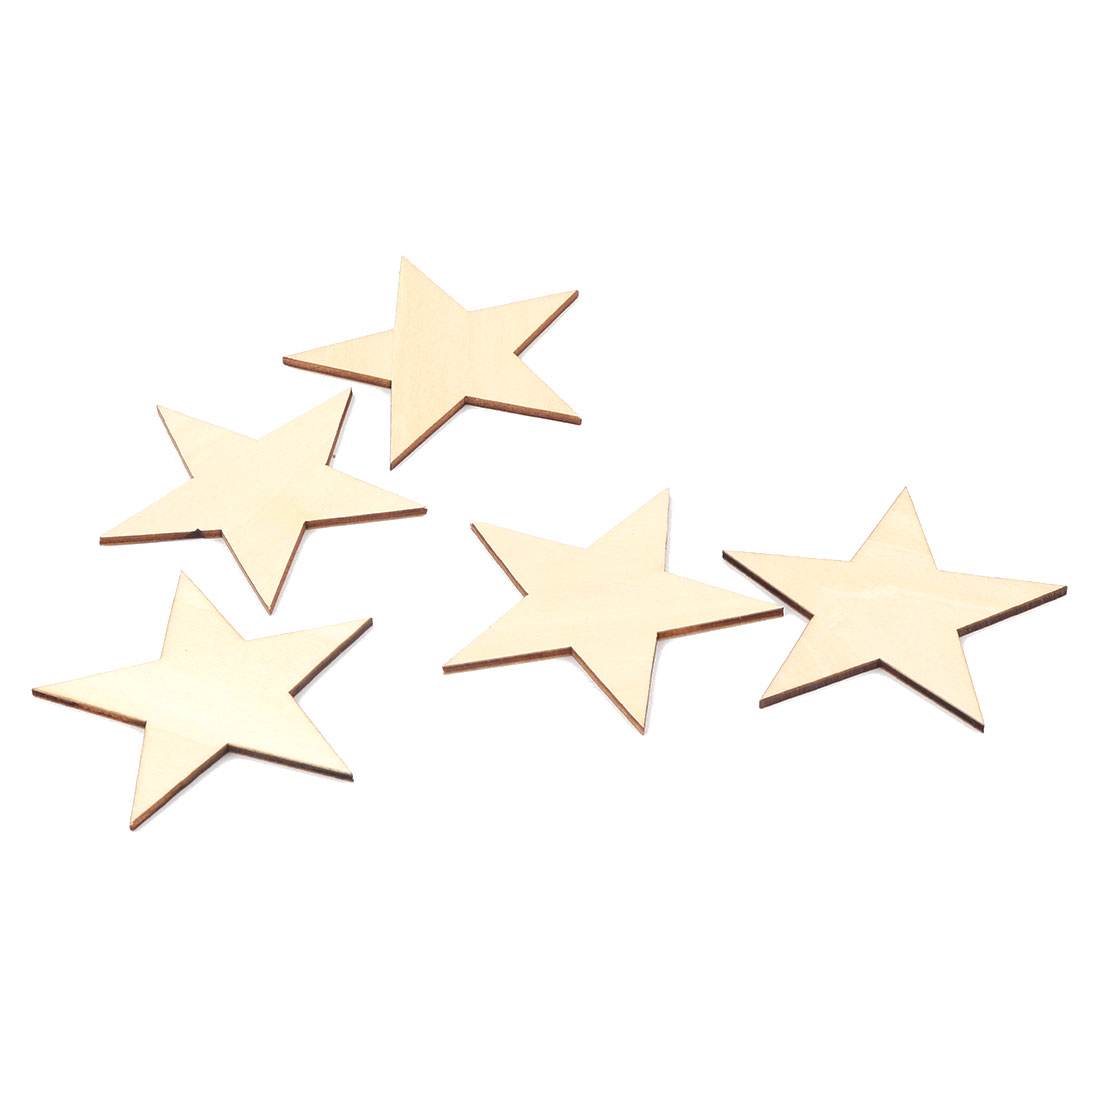 Wooden Star Shaped DIY Craft Christmas Tree Decor Accessories Ornaments Beige 80 x 80mm 5 Pcs